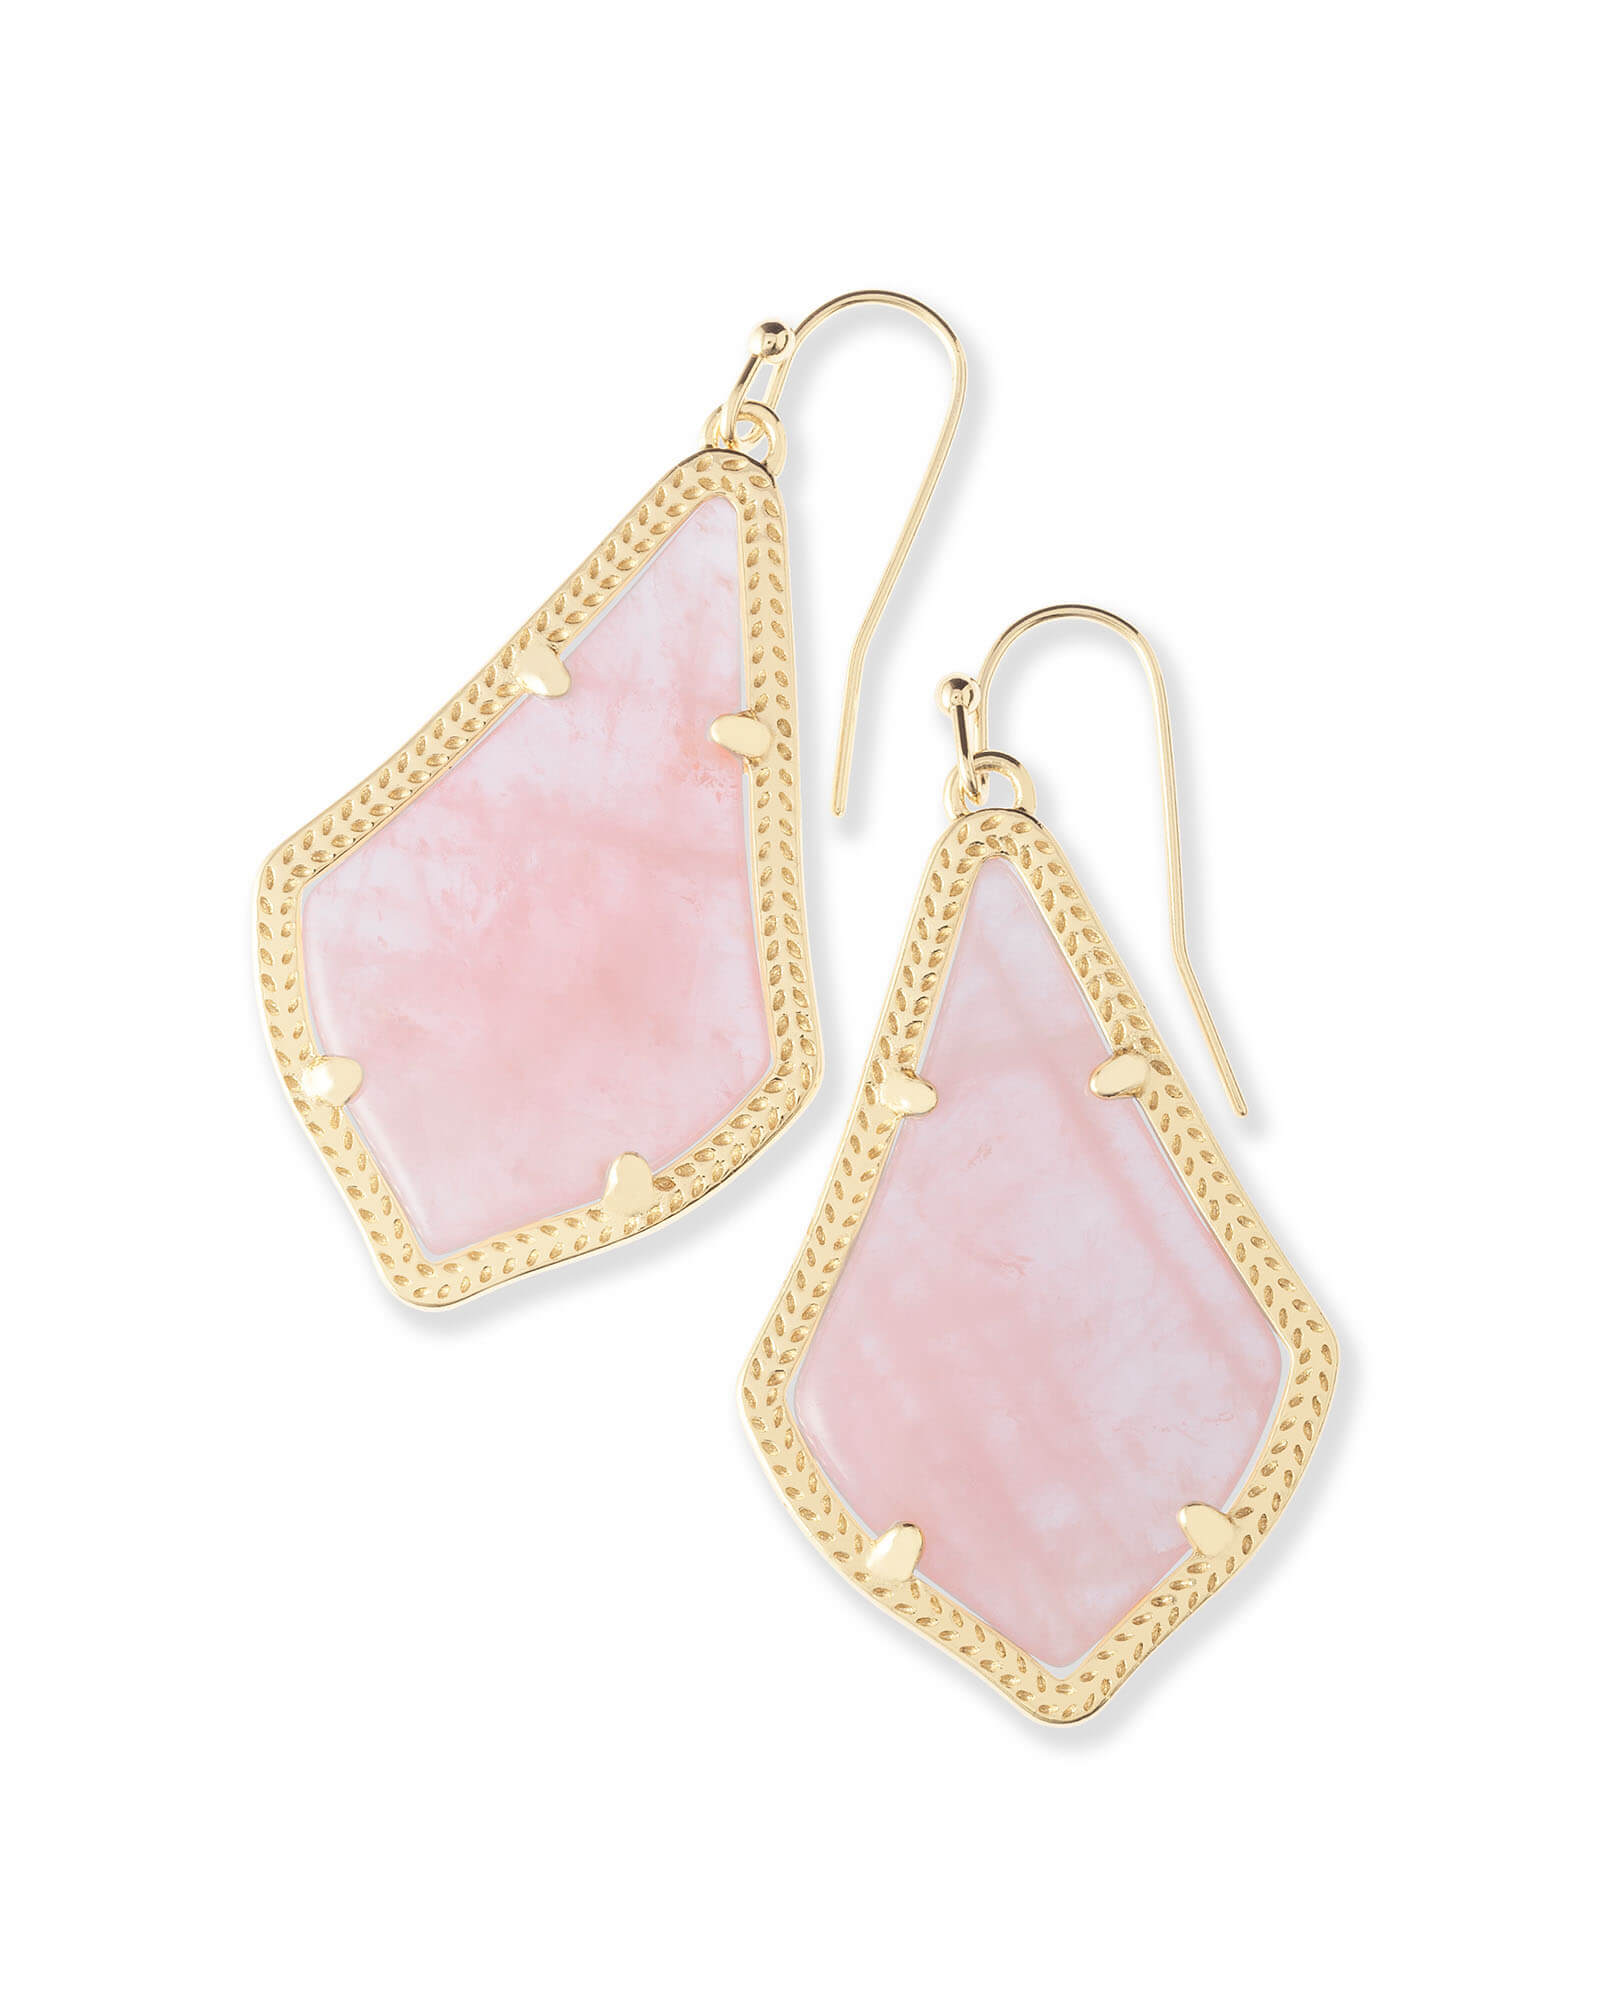 Alex Gold Drop Earrings in Rose Quartz